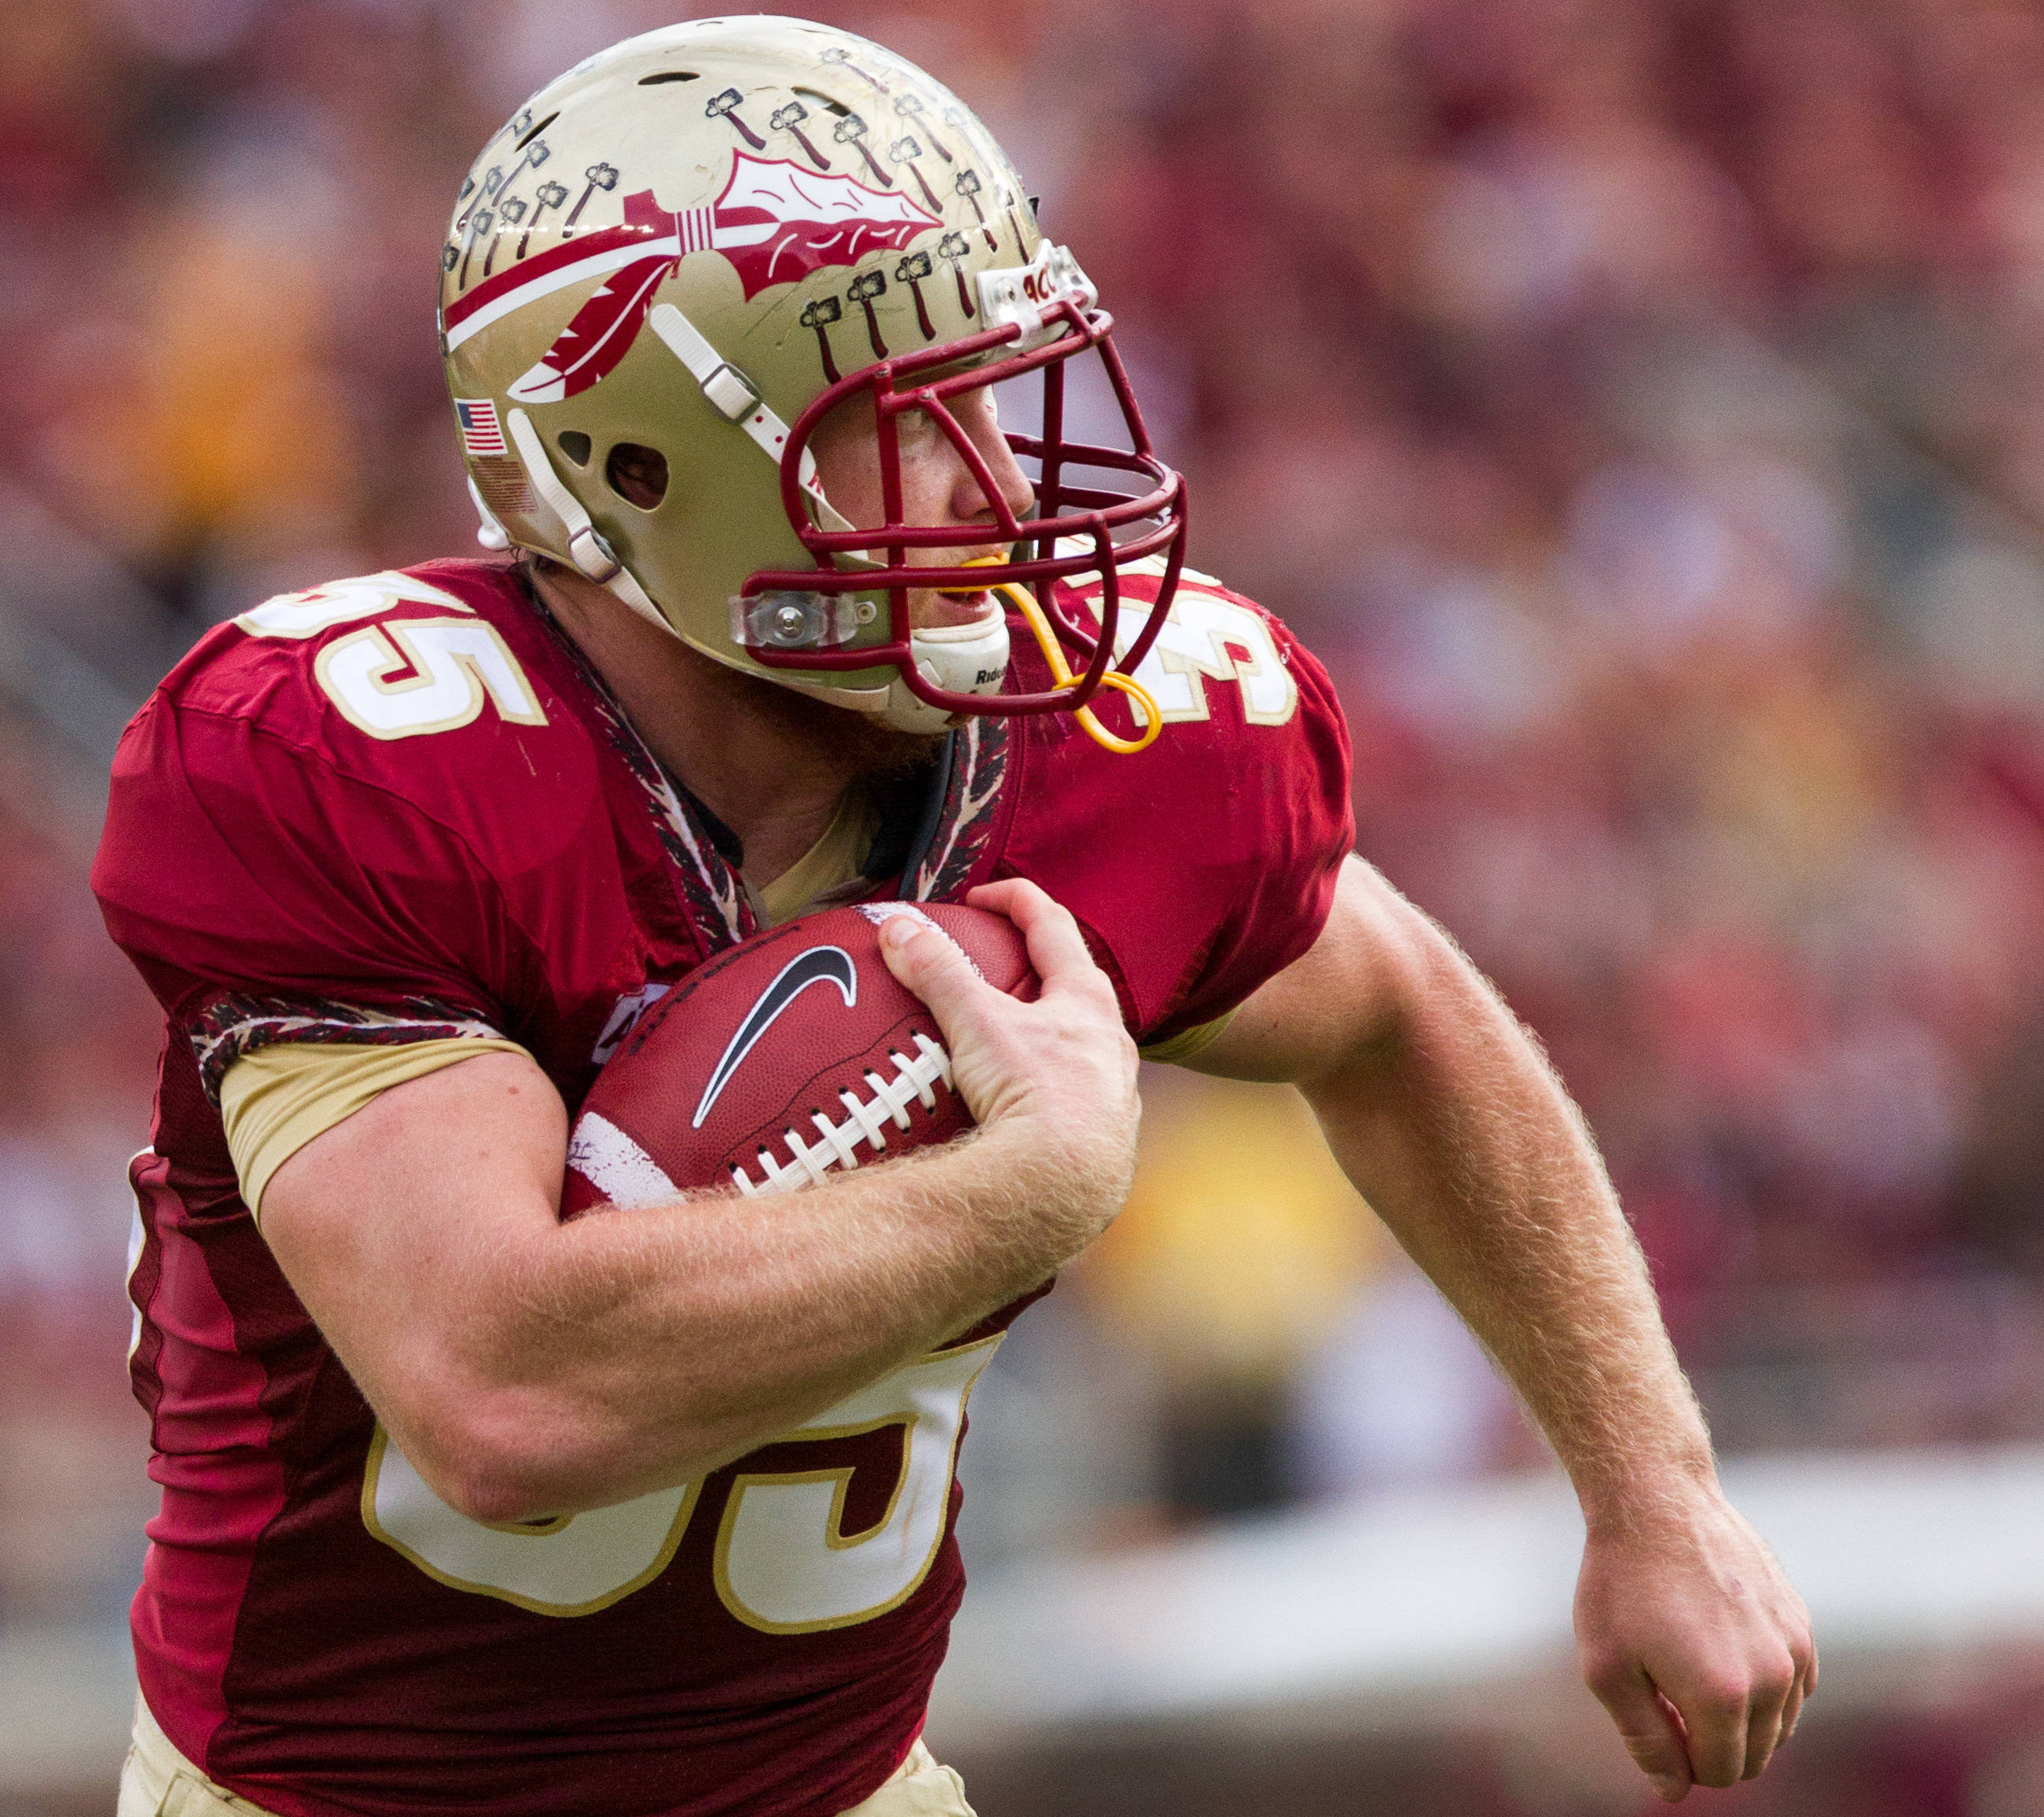 Nick O'Leary (35) runs the ball during FSU Football's 59-3 win over Syracuse on Saturday, November 16, 2013 in Tallahassee, Fla. Photo by Mike Schwarz.